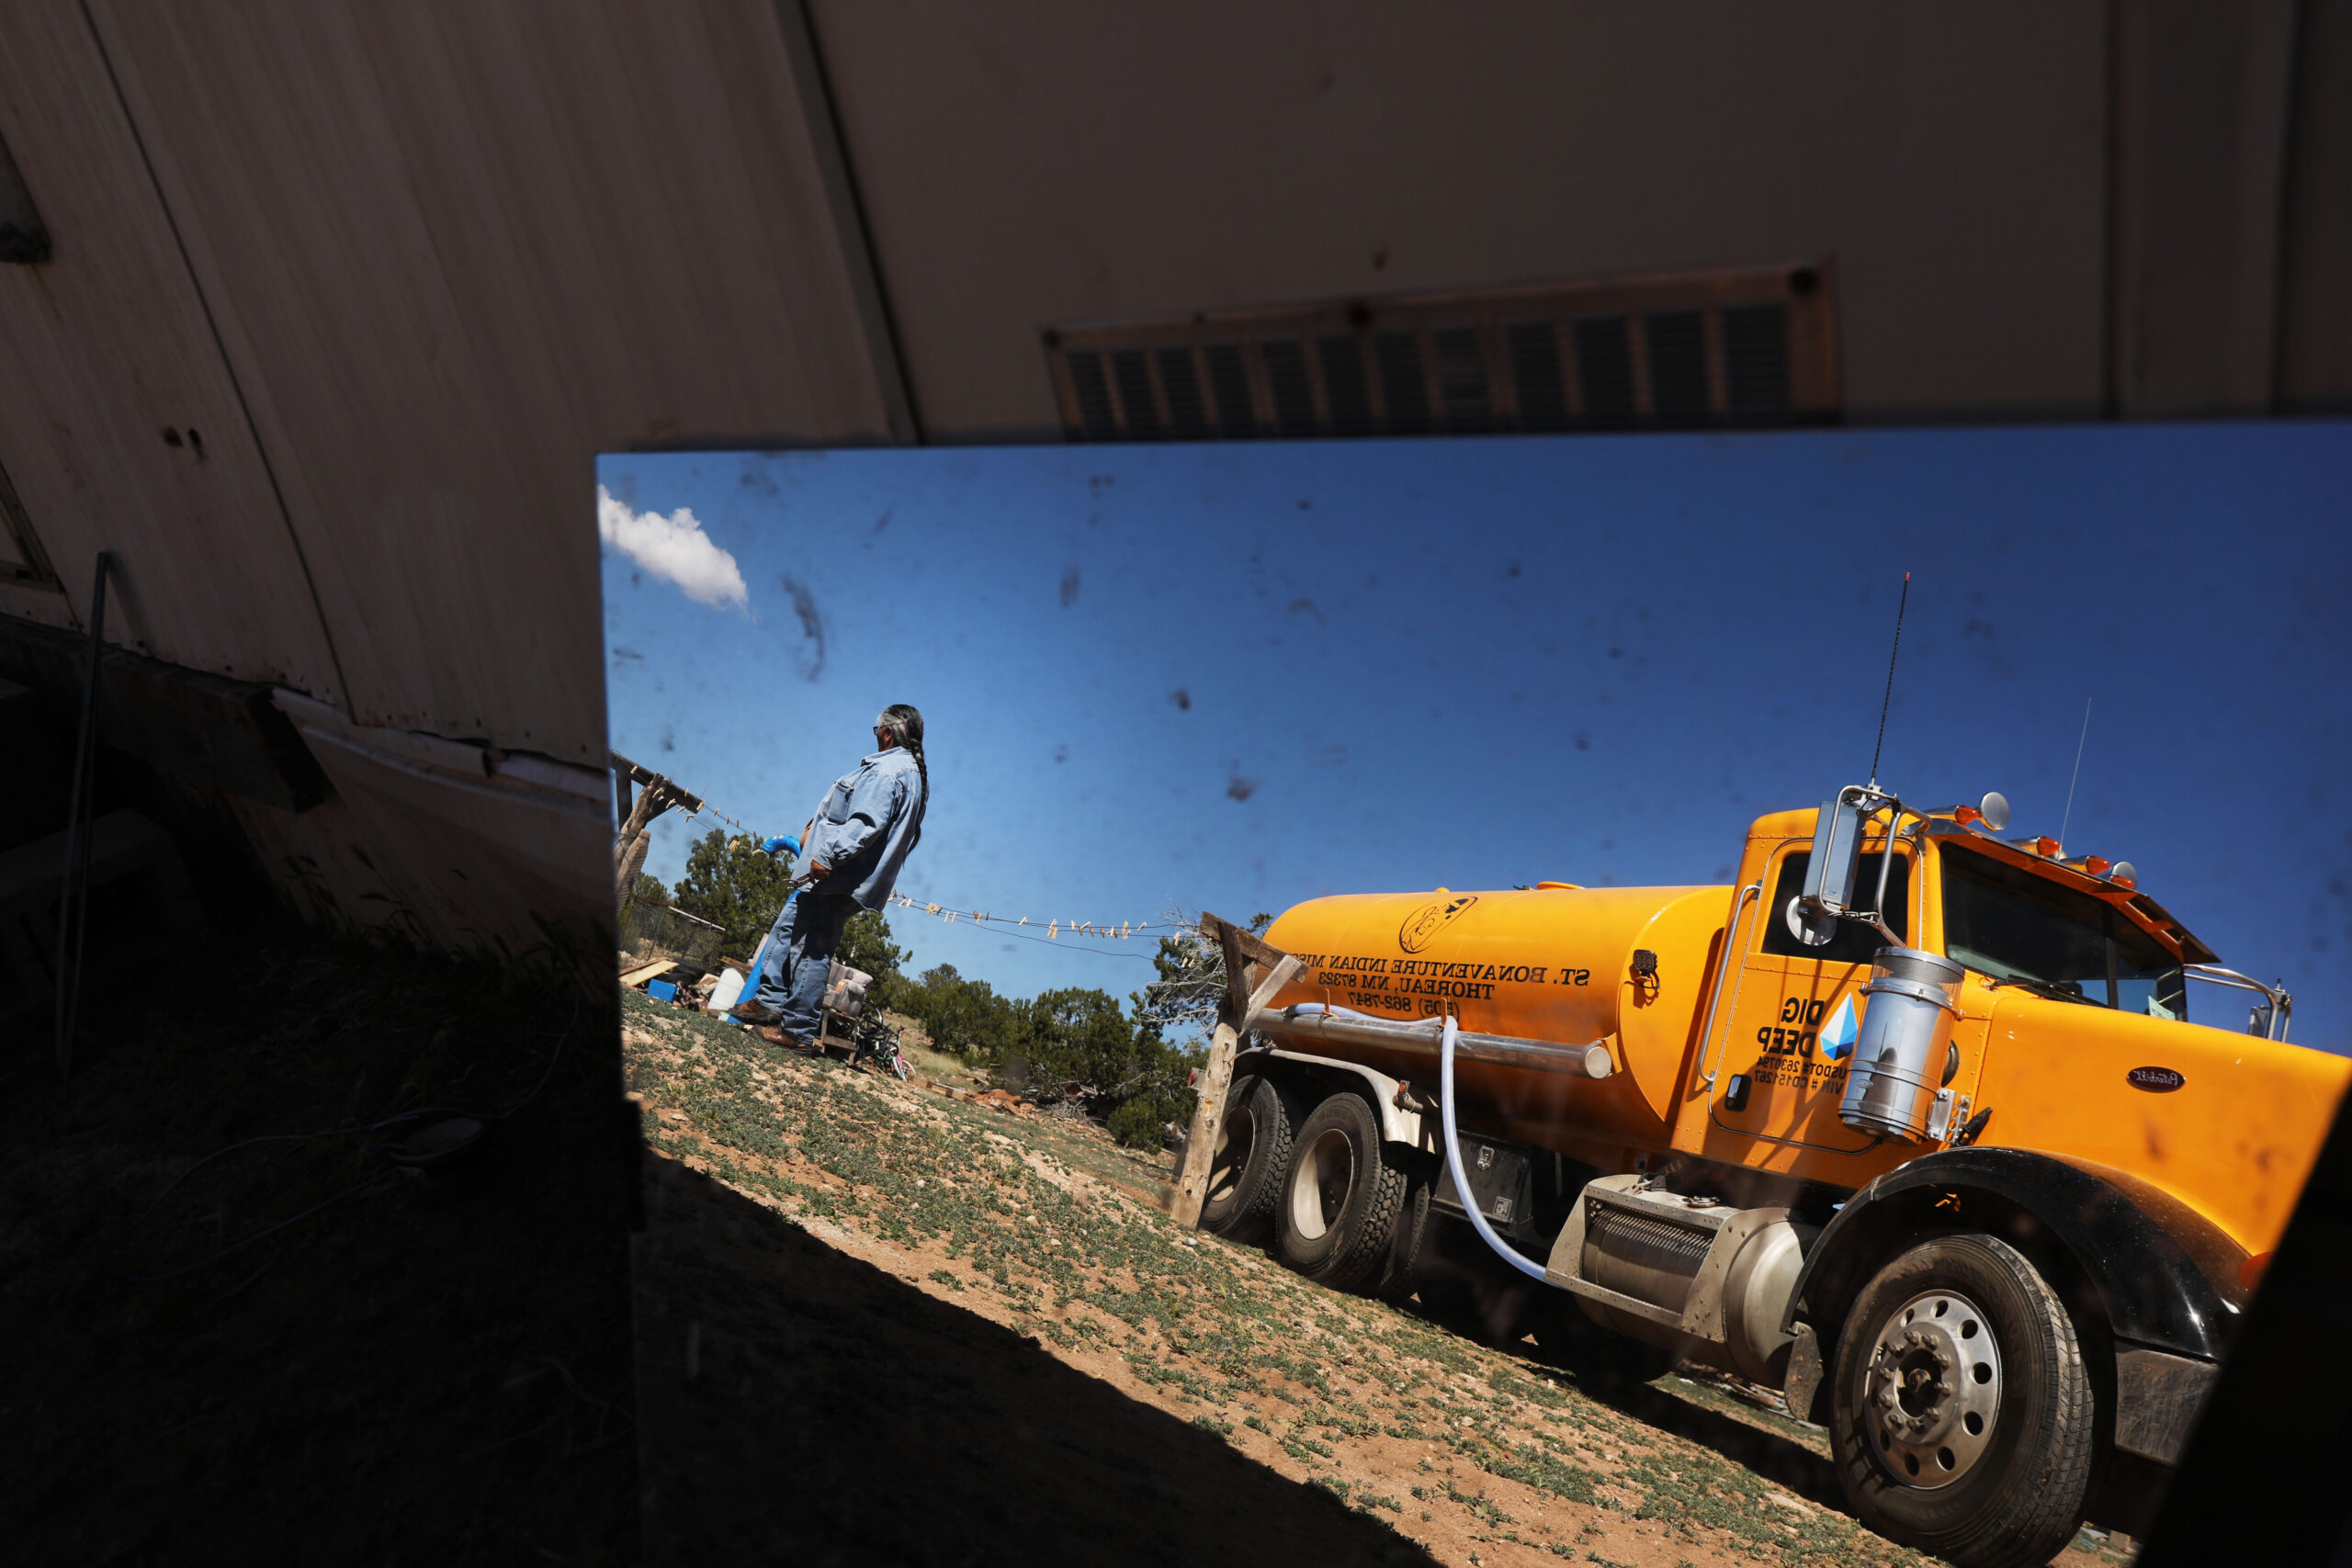 A large yello water truck with its operator reflected in a mirror, delivering water to a household on Navajo land.